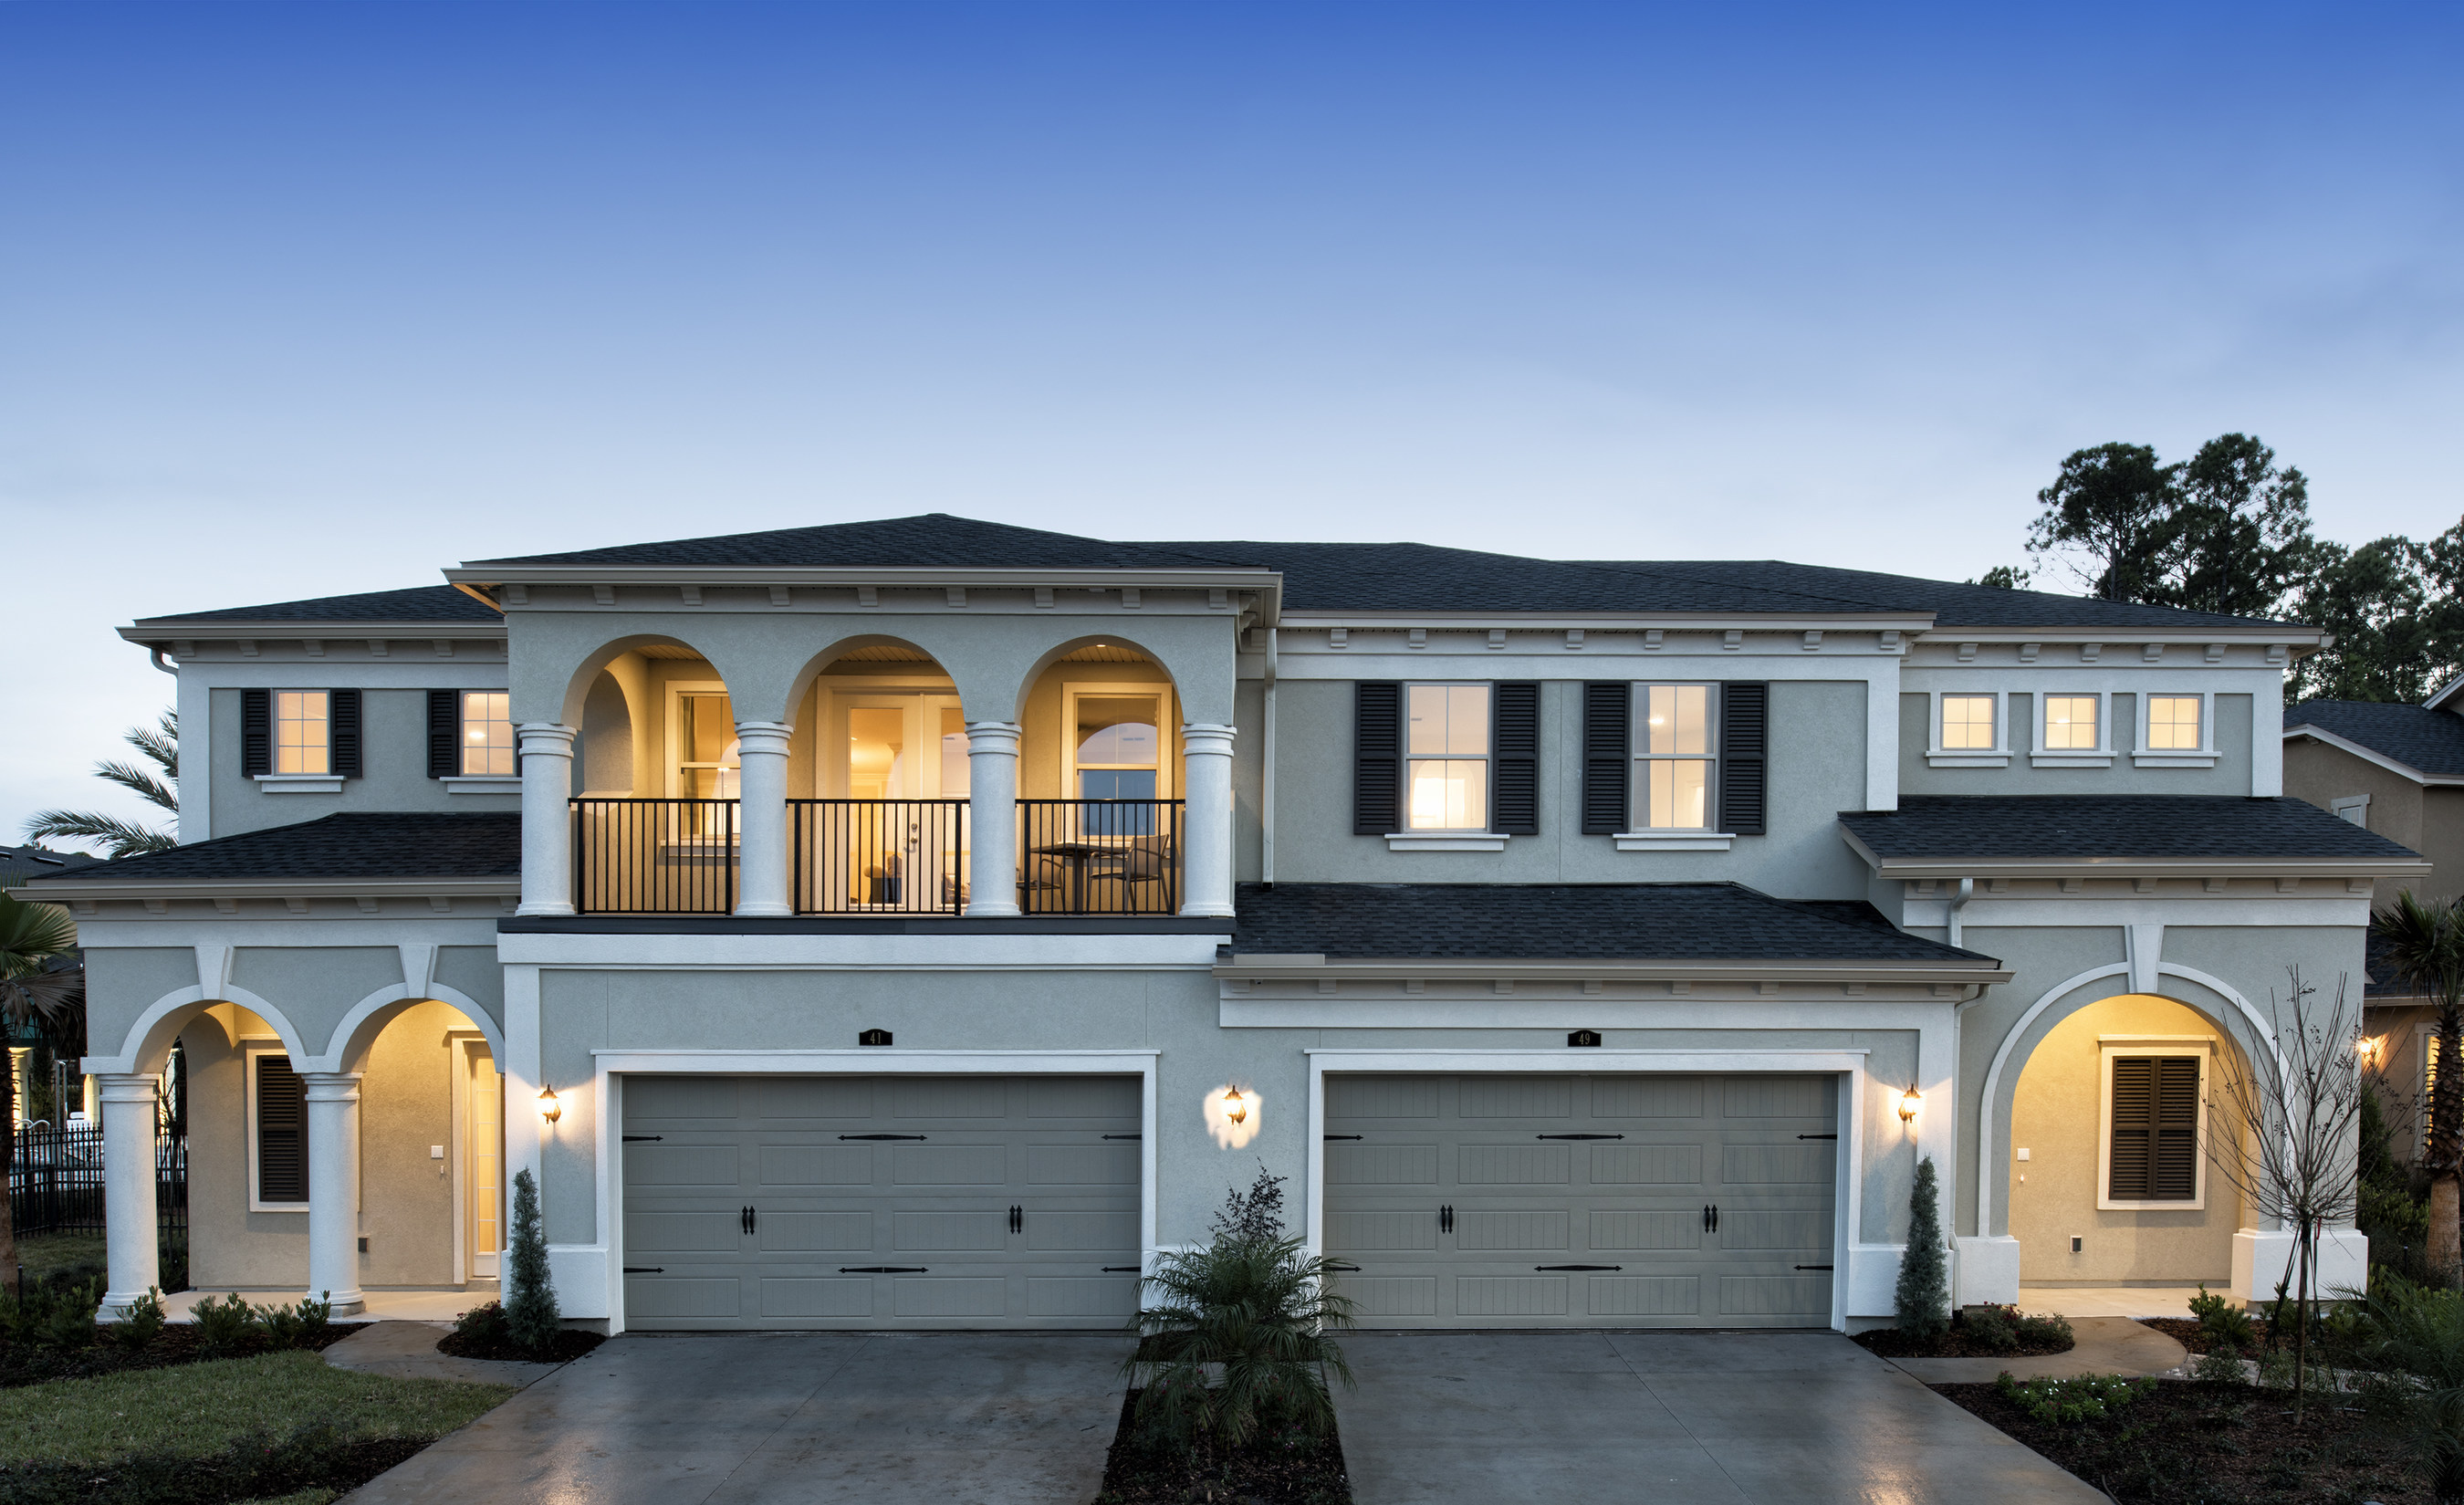 Standard Pacific Homes Unveils New Villa-Style Homes In